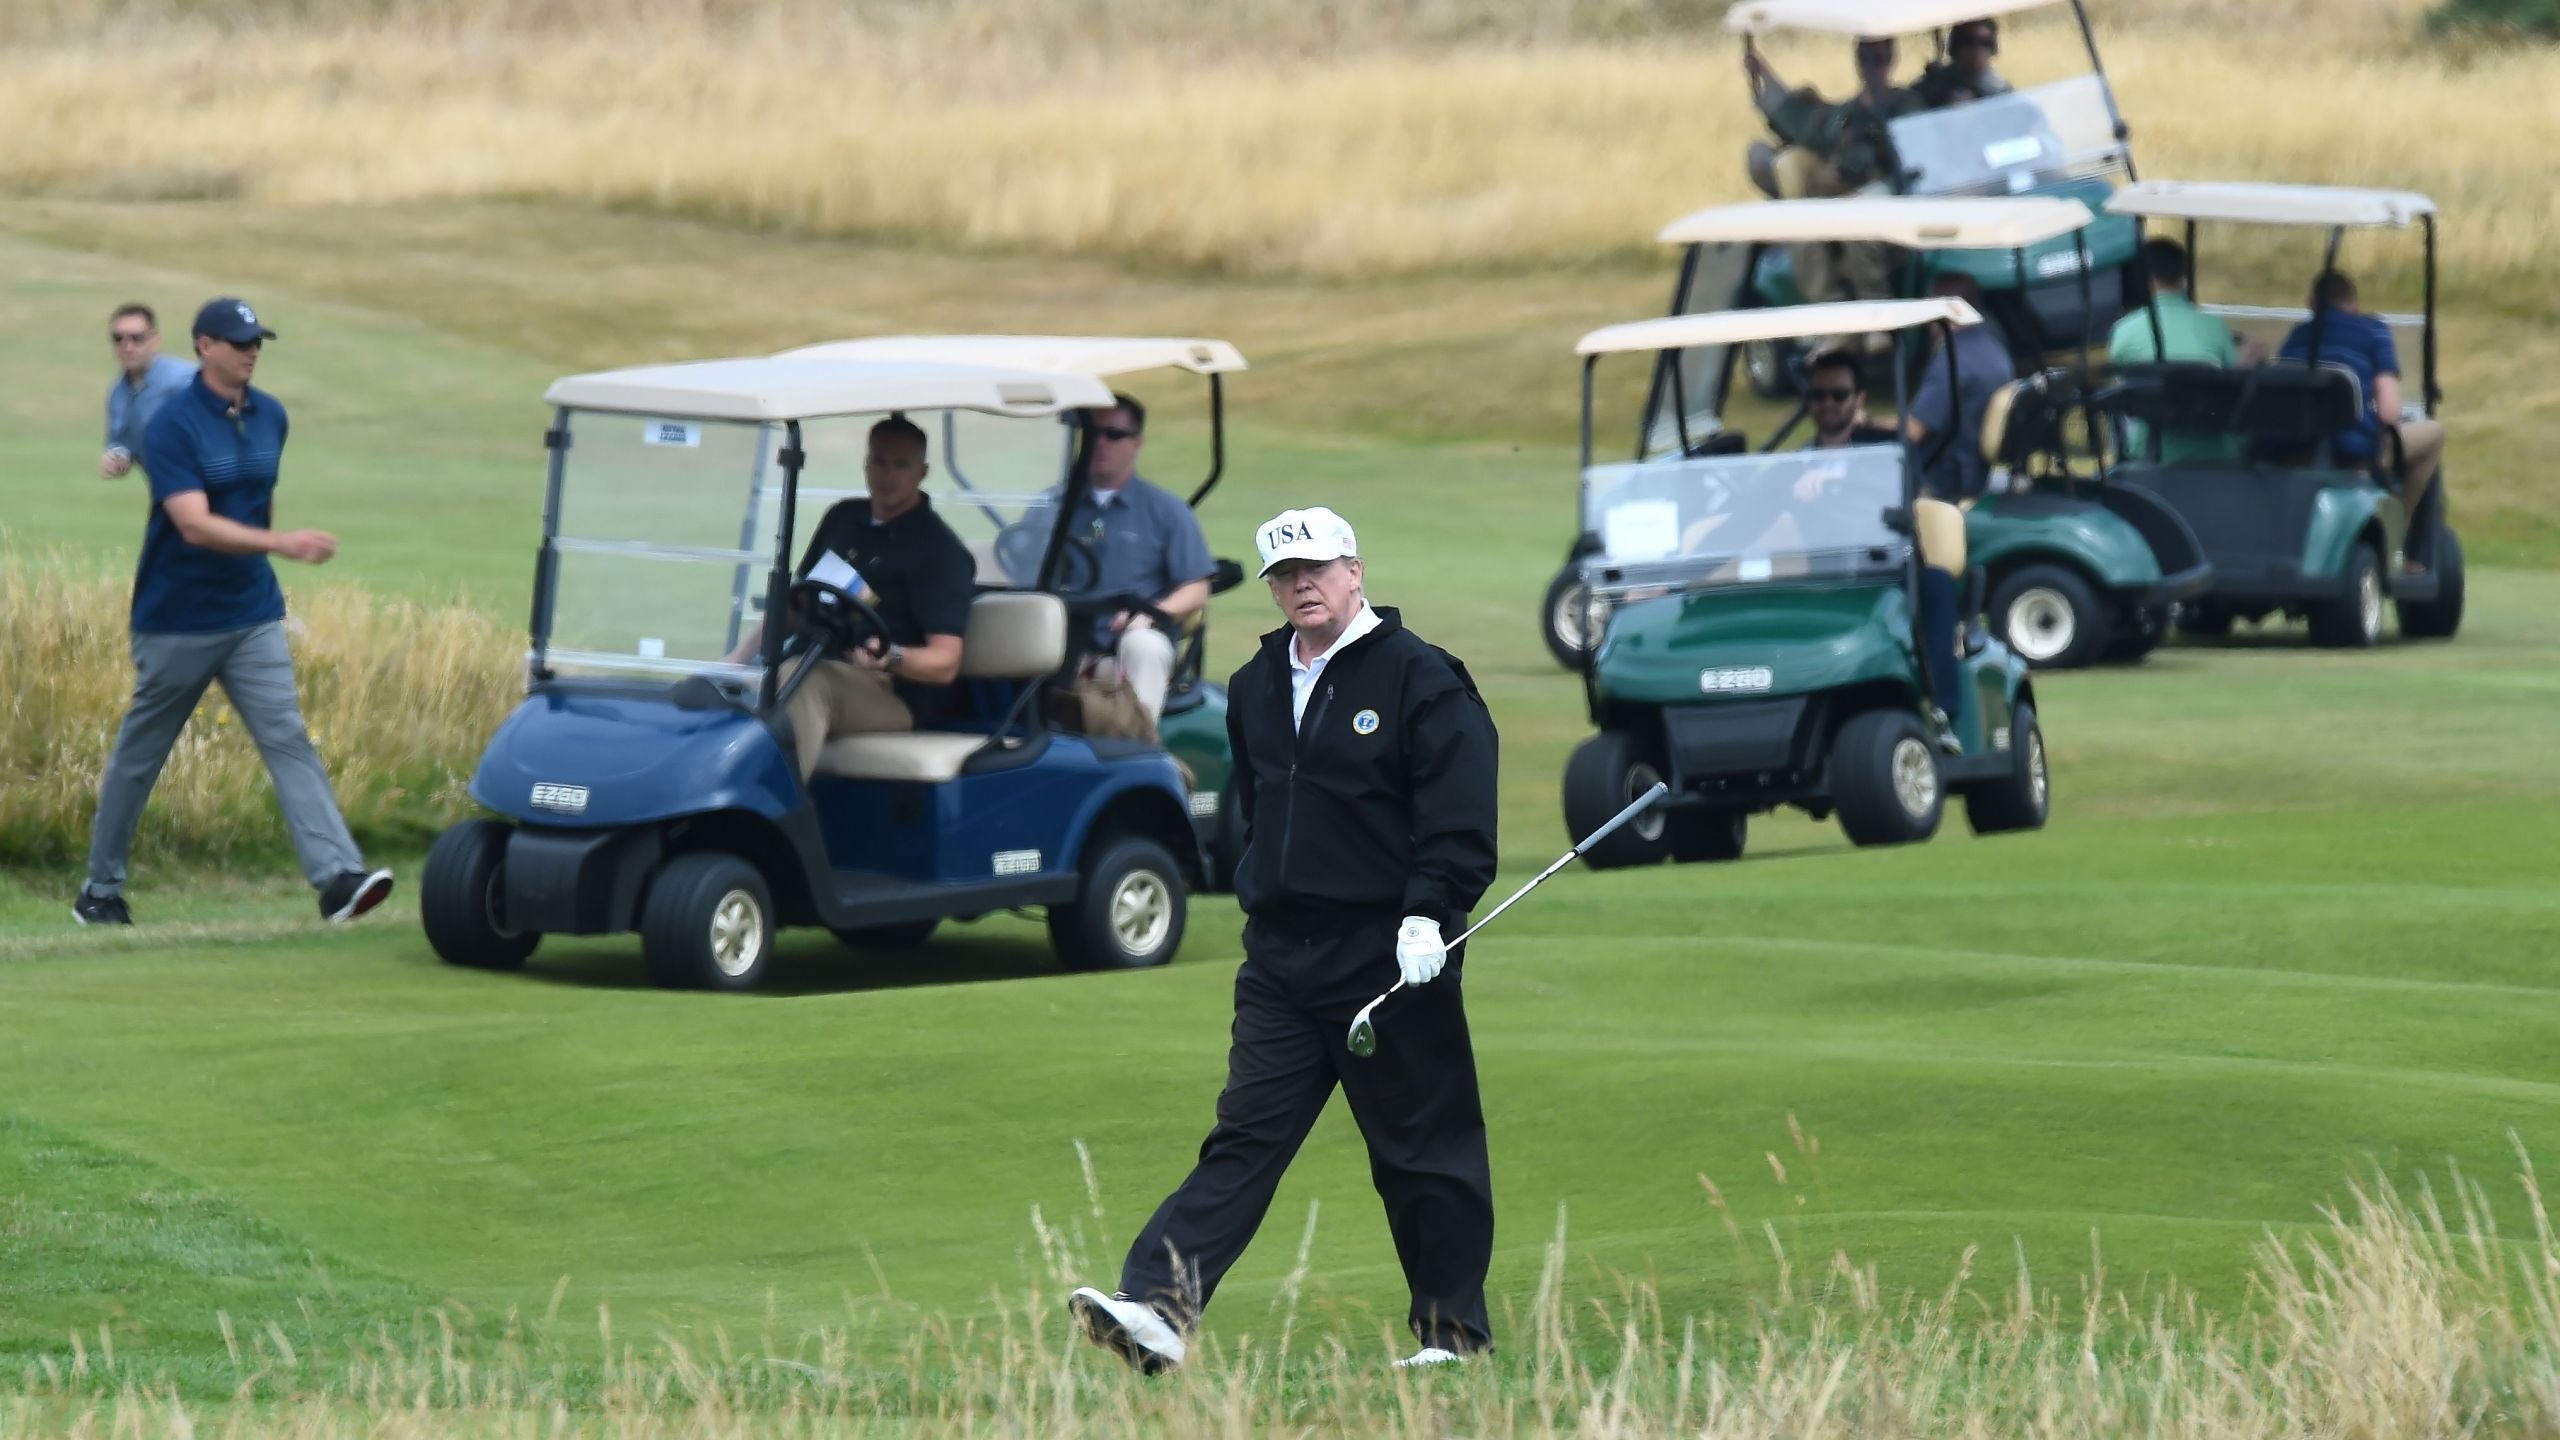 Donald Trump walks during a round of golf at Trump Turnberry southwest of Glasgow, Scotland on July 14, 2018. (Credit: ANDY BUCHANAN/AFP/Getty Images)